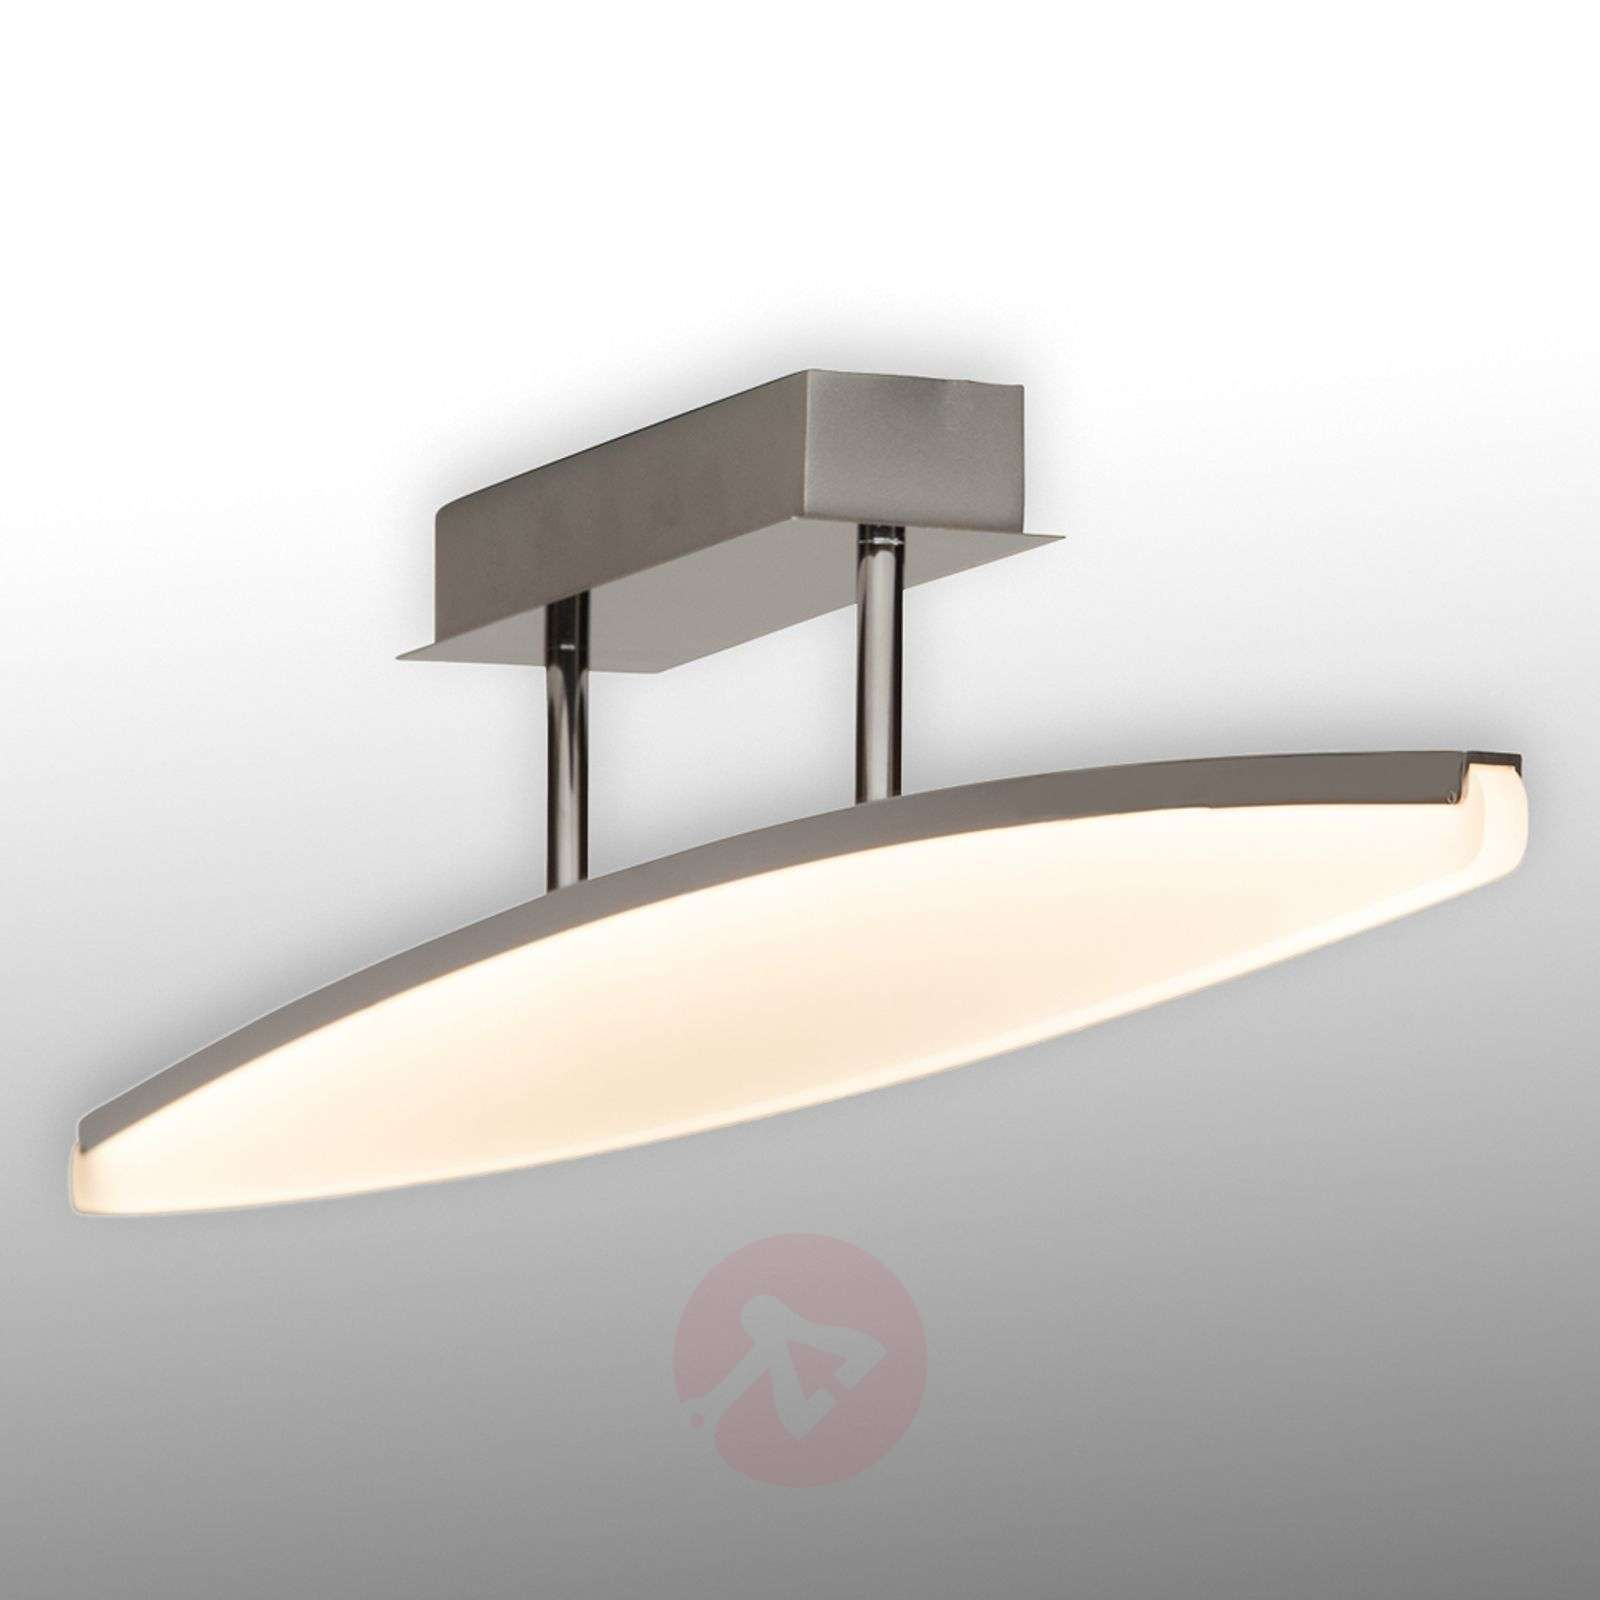 View LED ceiling lamp with curved lampshade-1509028-01